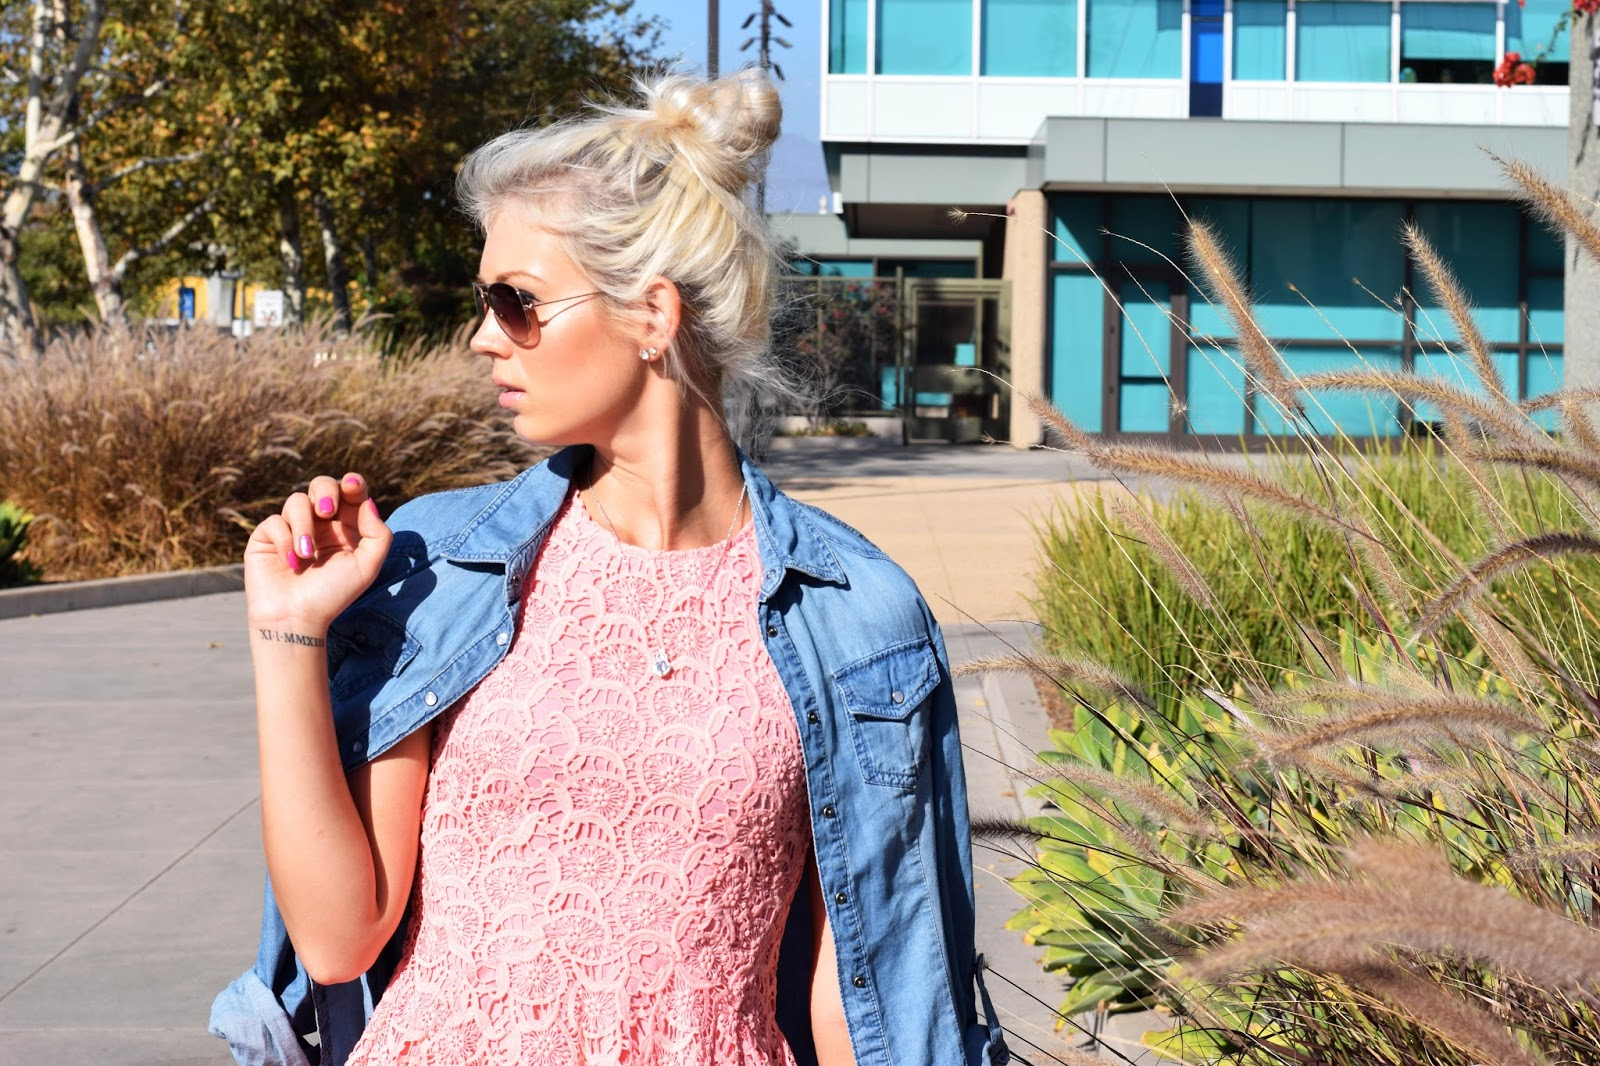 denim shirt, lace dress, summer vibes, german blondy, toms, aviator sunglasses, sunglasses, toms